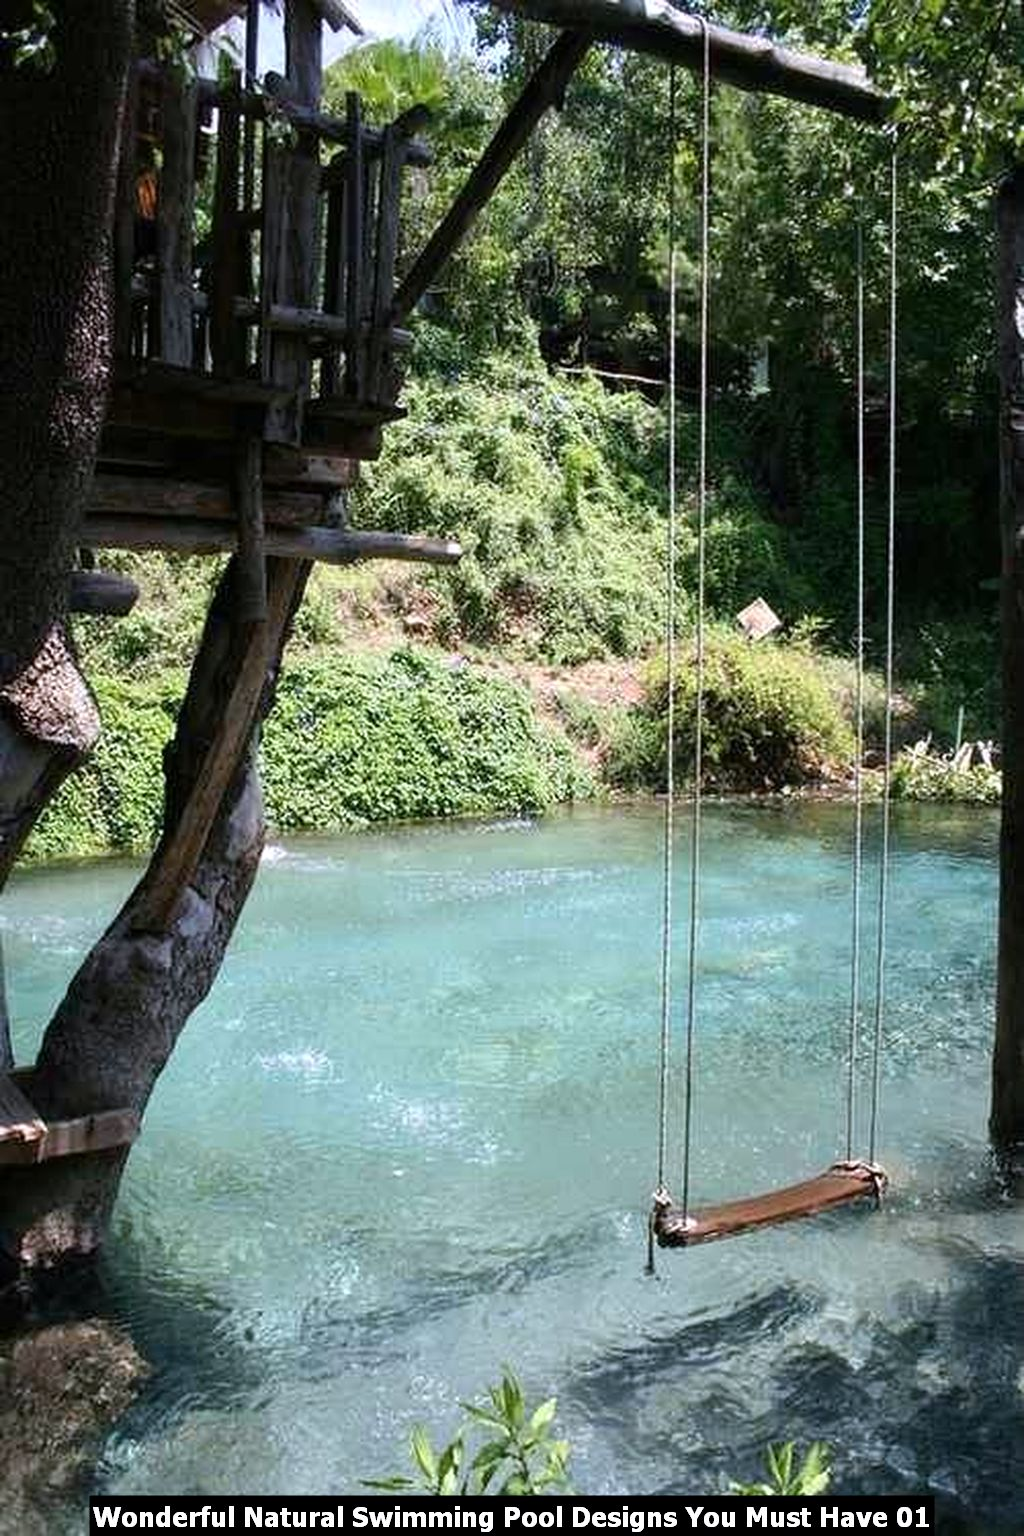 Wonderful Natural Swimming Pool Designs You Must Have 01